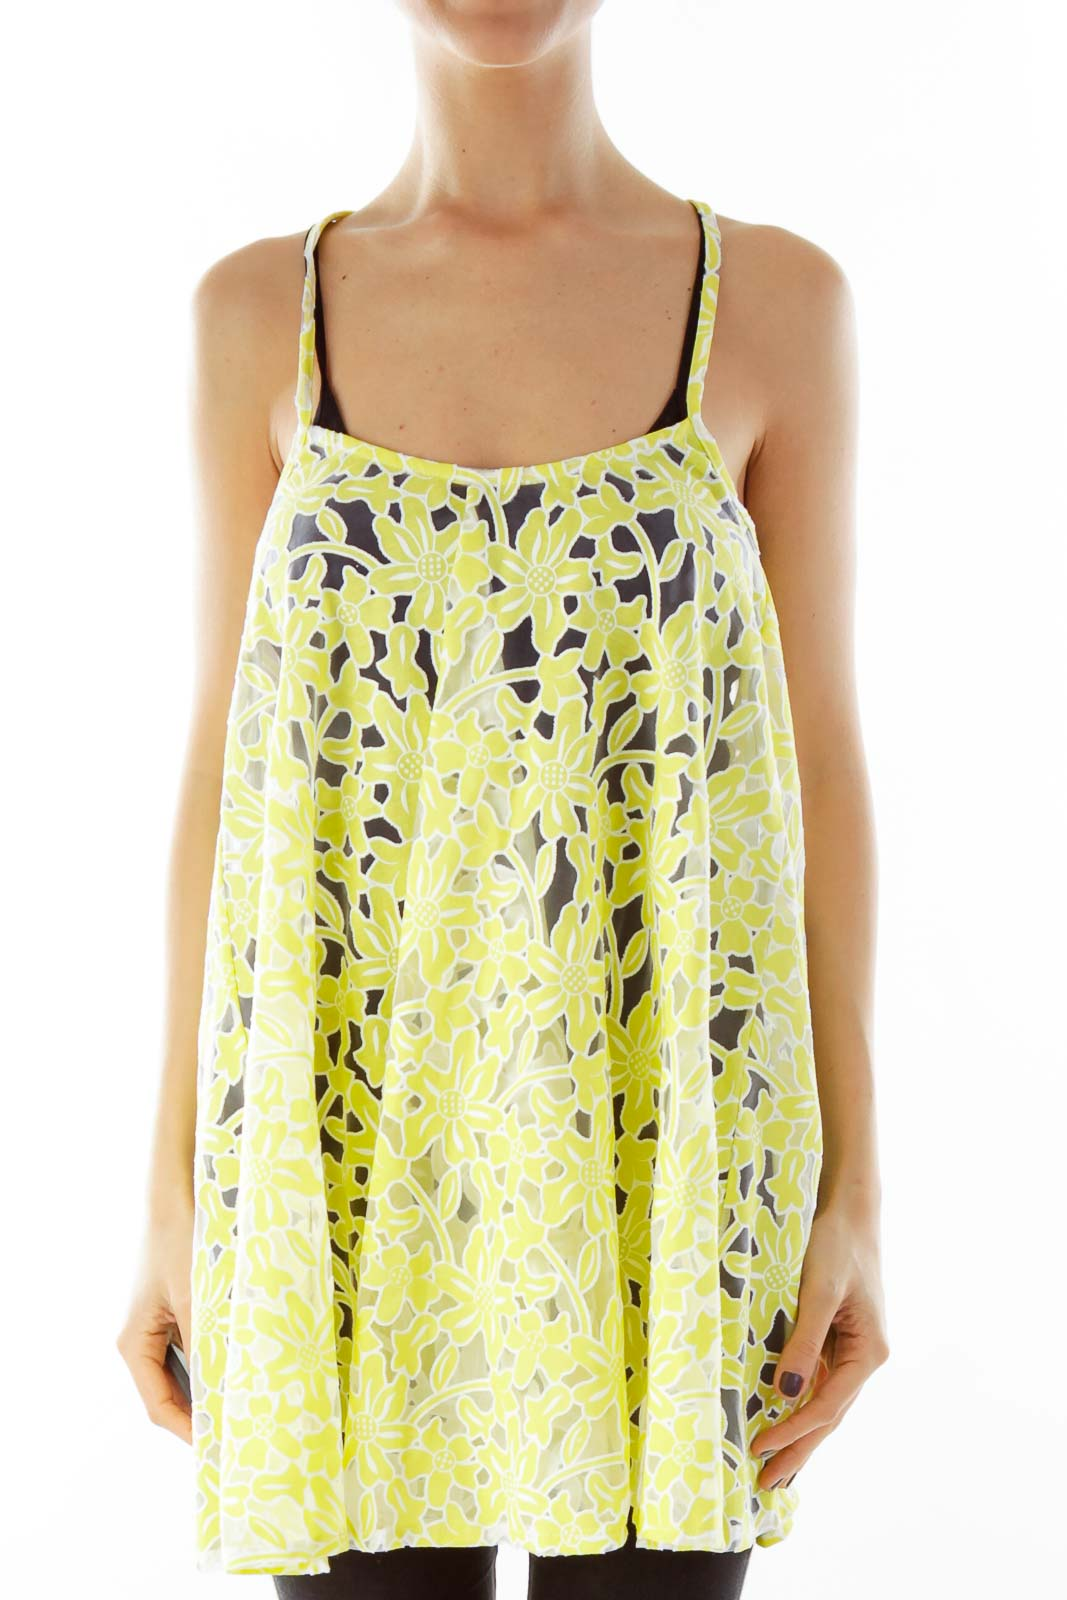 Yellow Floral Lace Tank Top